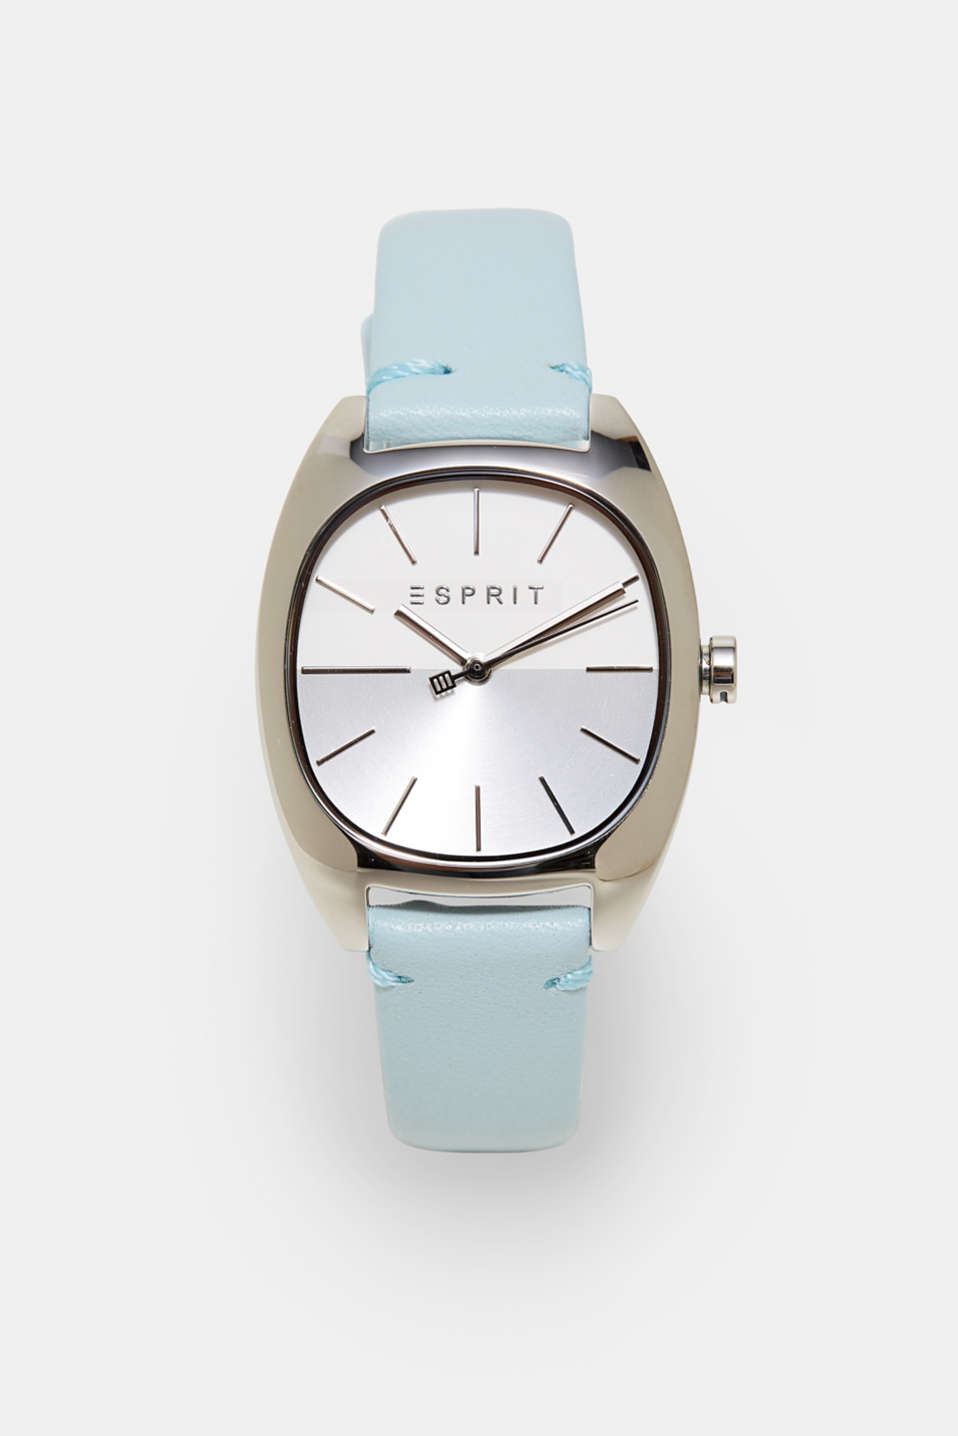 Esprit - Watch with a rectangular casing